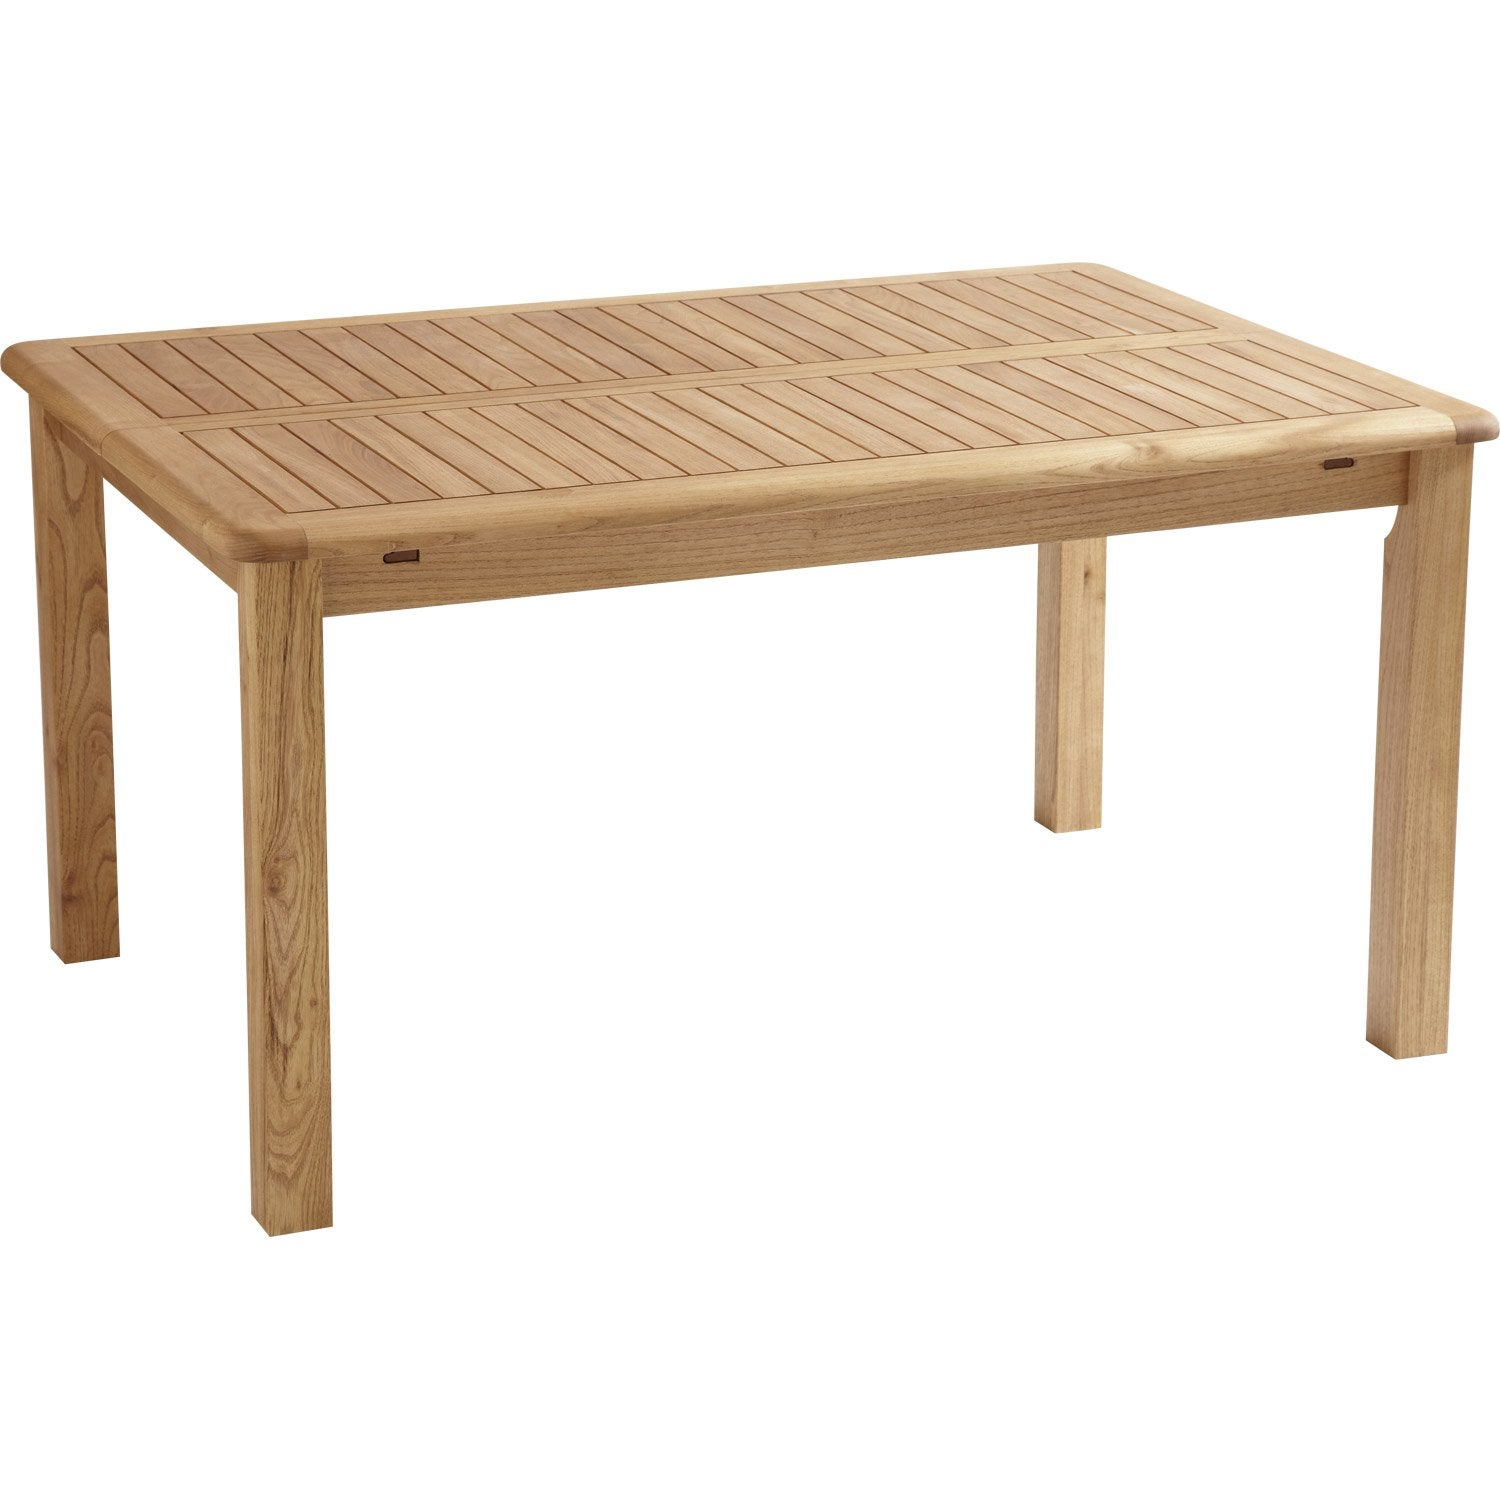 Table de jardin rectangulaire en bois - Table en bois rectangulaire ...